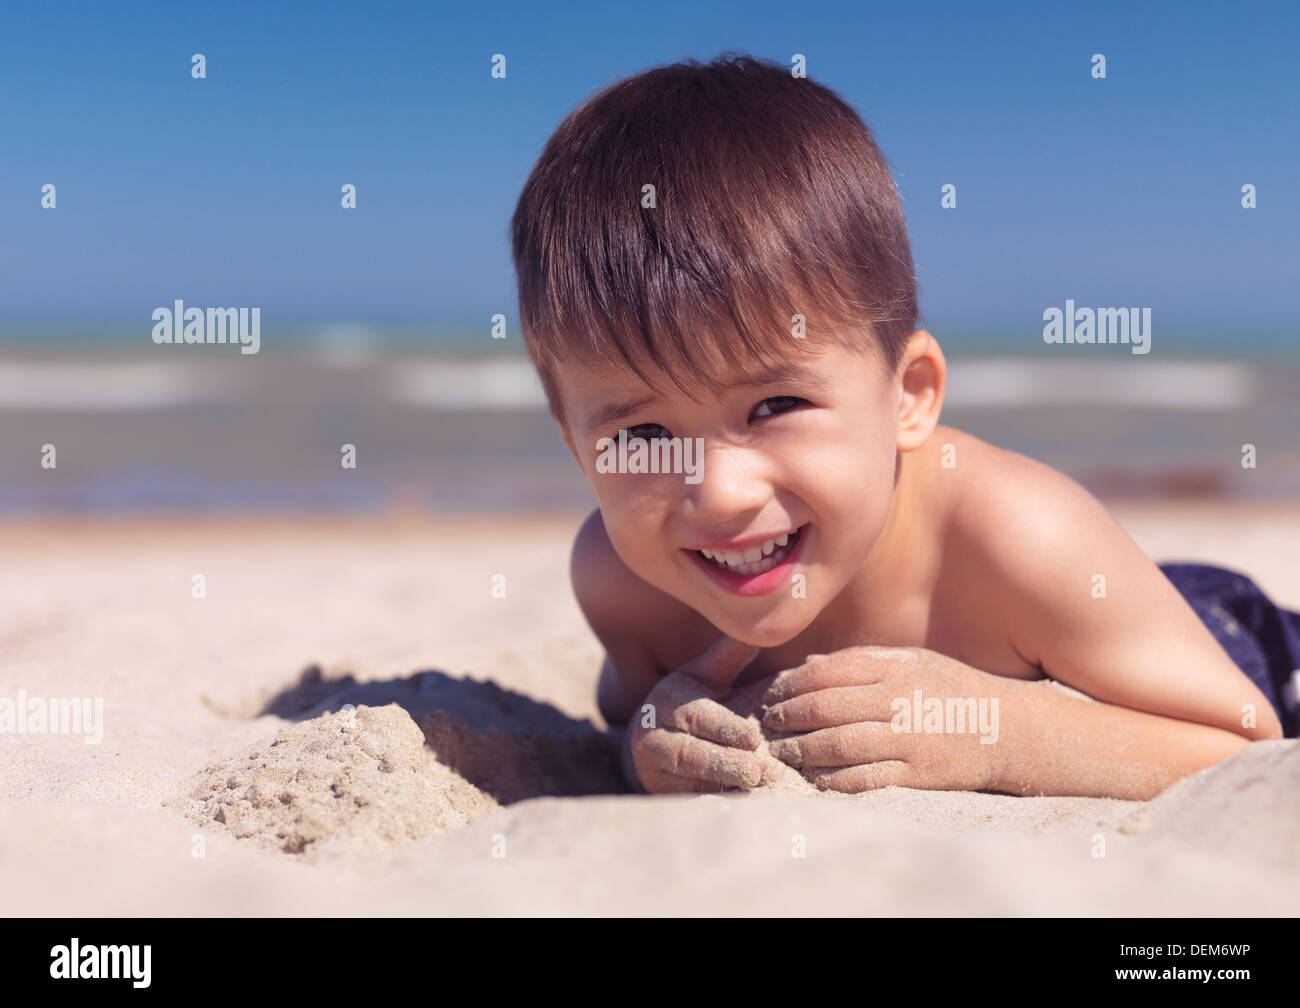 Portrait of a cute happy child playing in the sand on the beach. Lake Huron, Ontario, Canada. - Stock Image